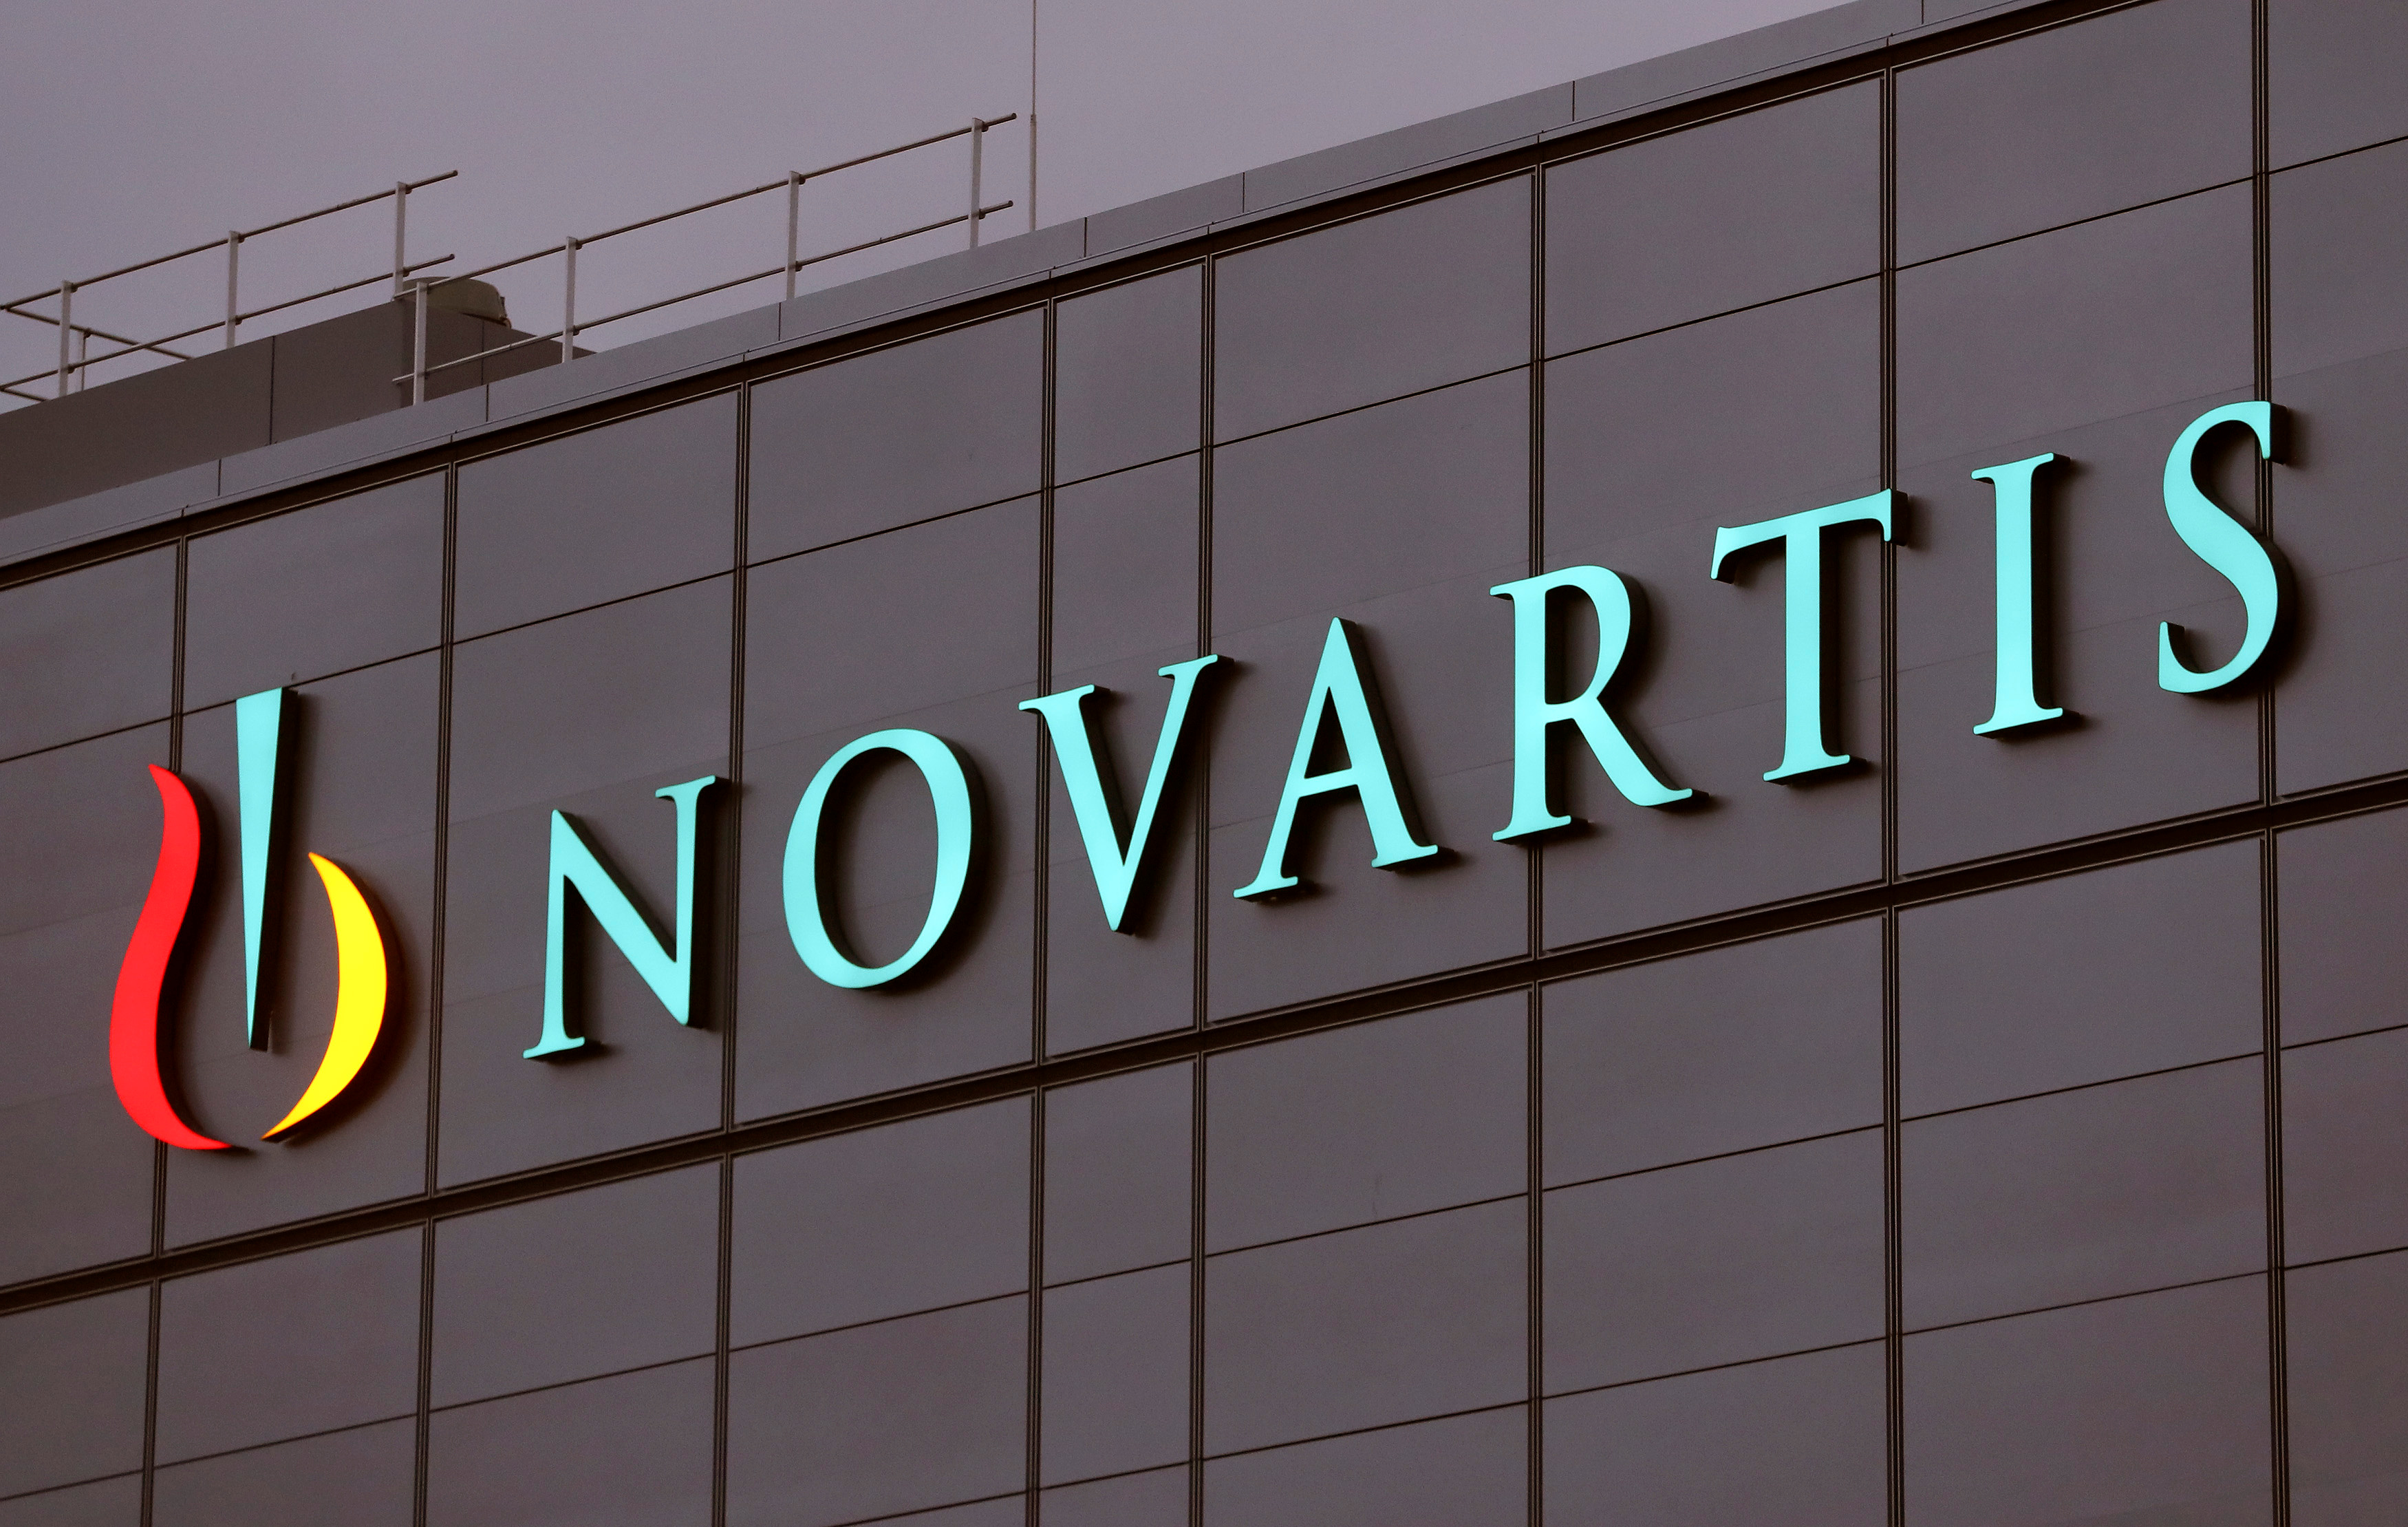 Why Novartis Is Moving to Acquire Advanced Accelerator Applications